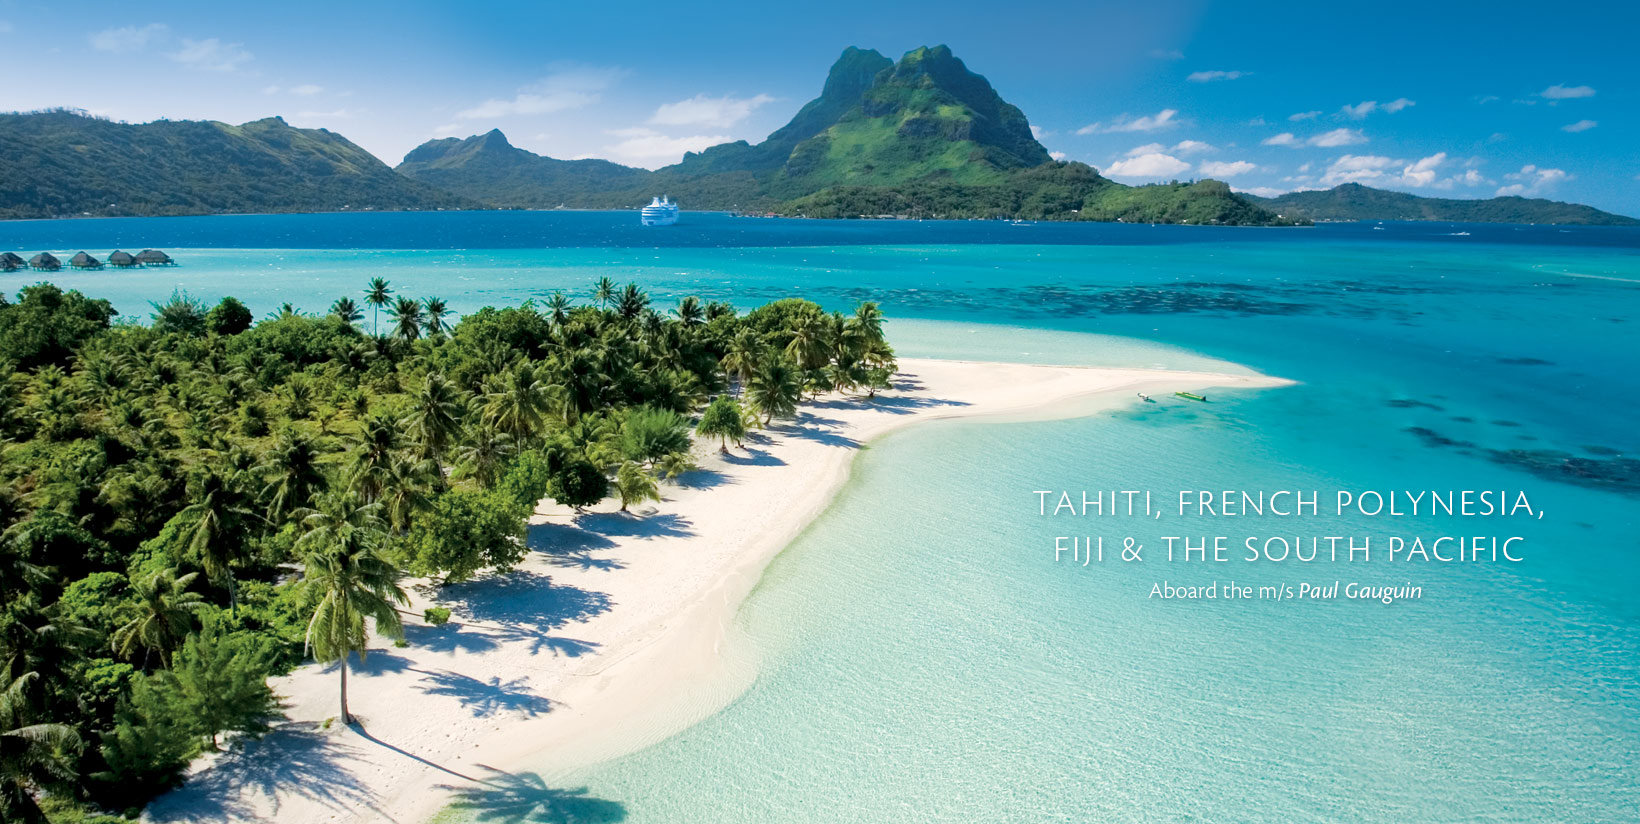 Tahiti, Fiji, French Polynesia and the South Pacific